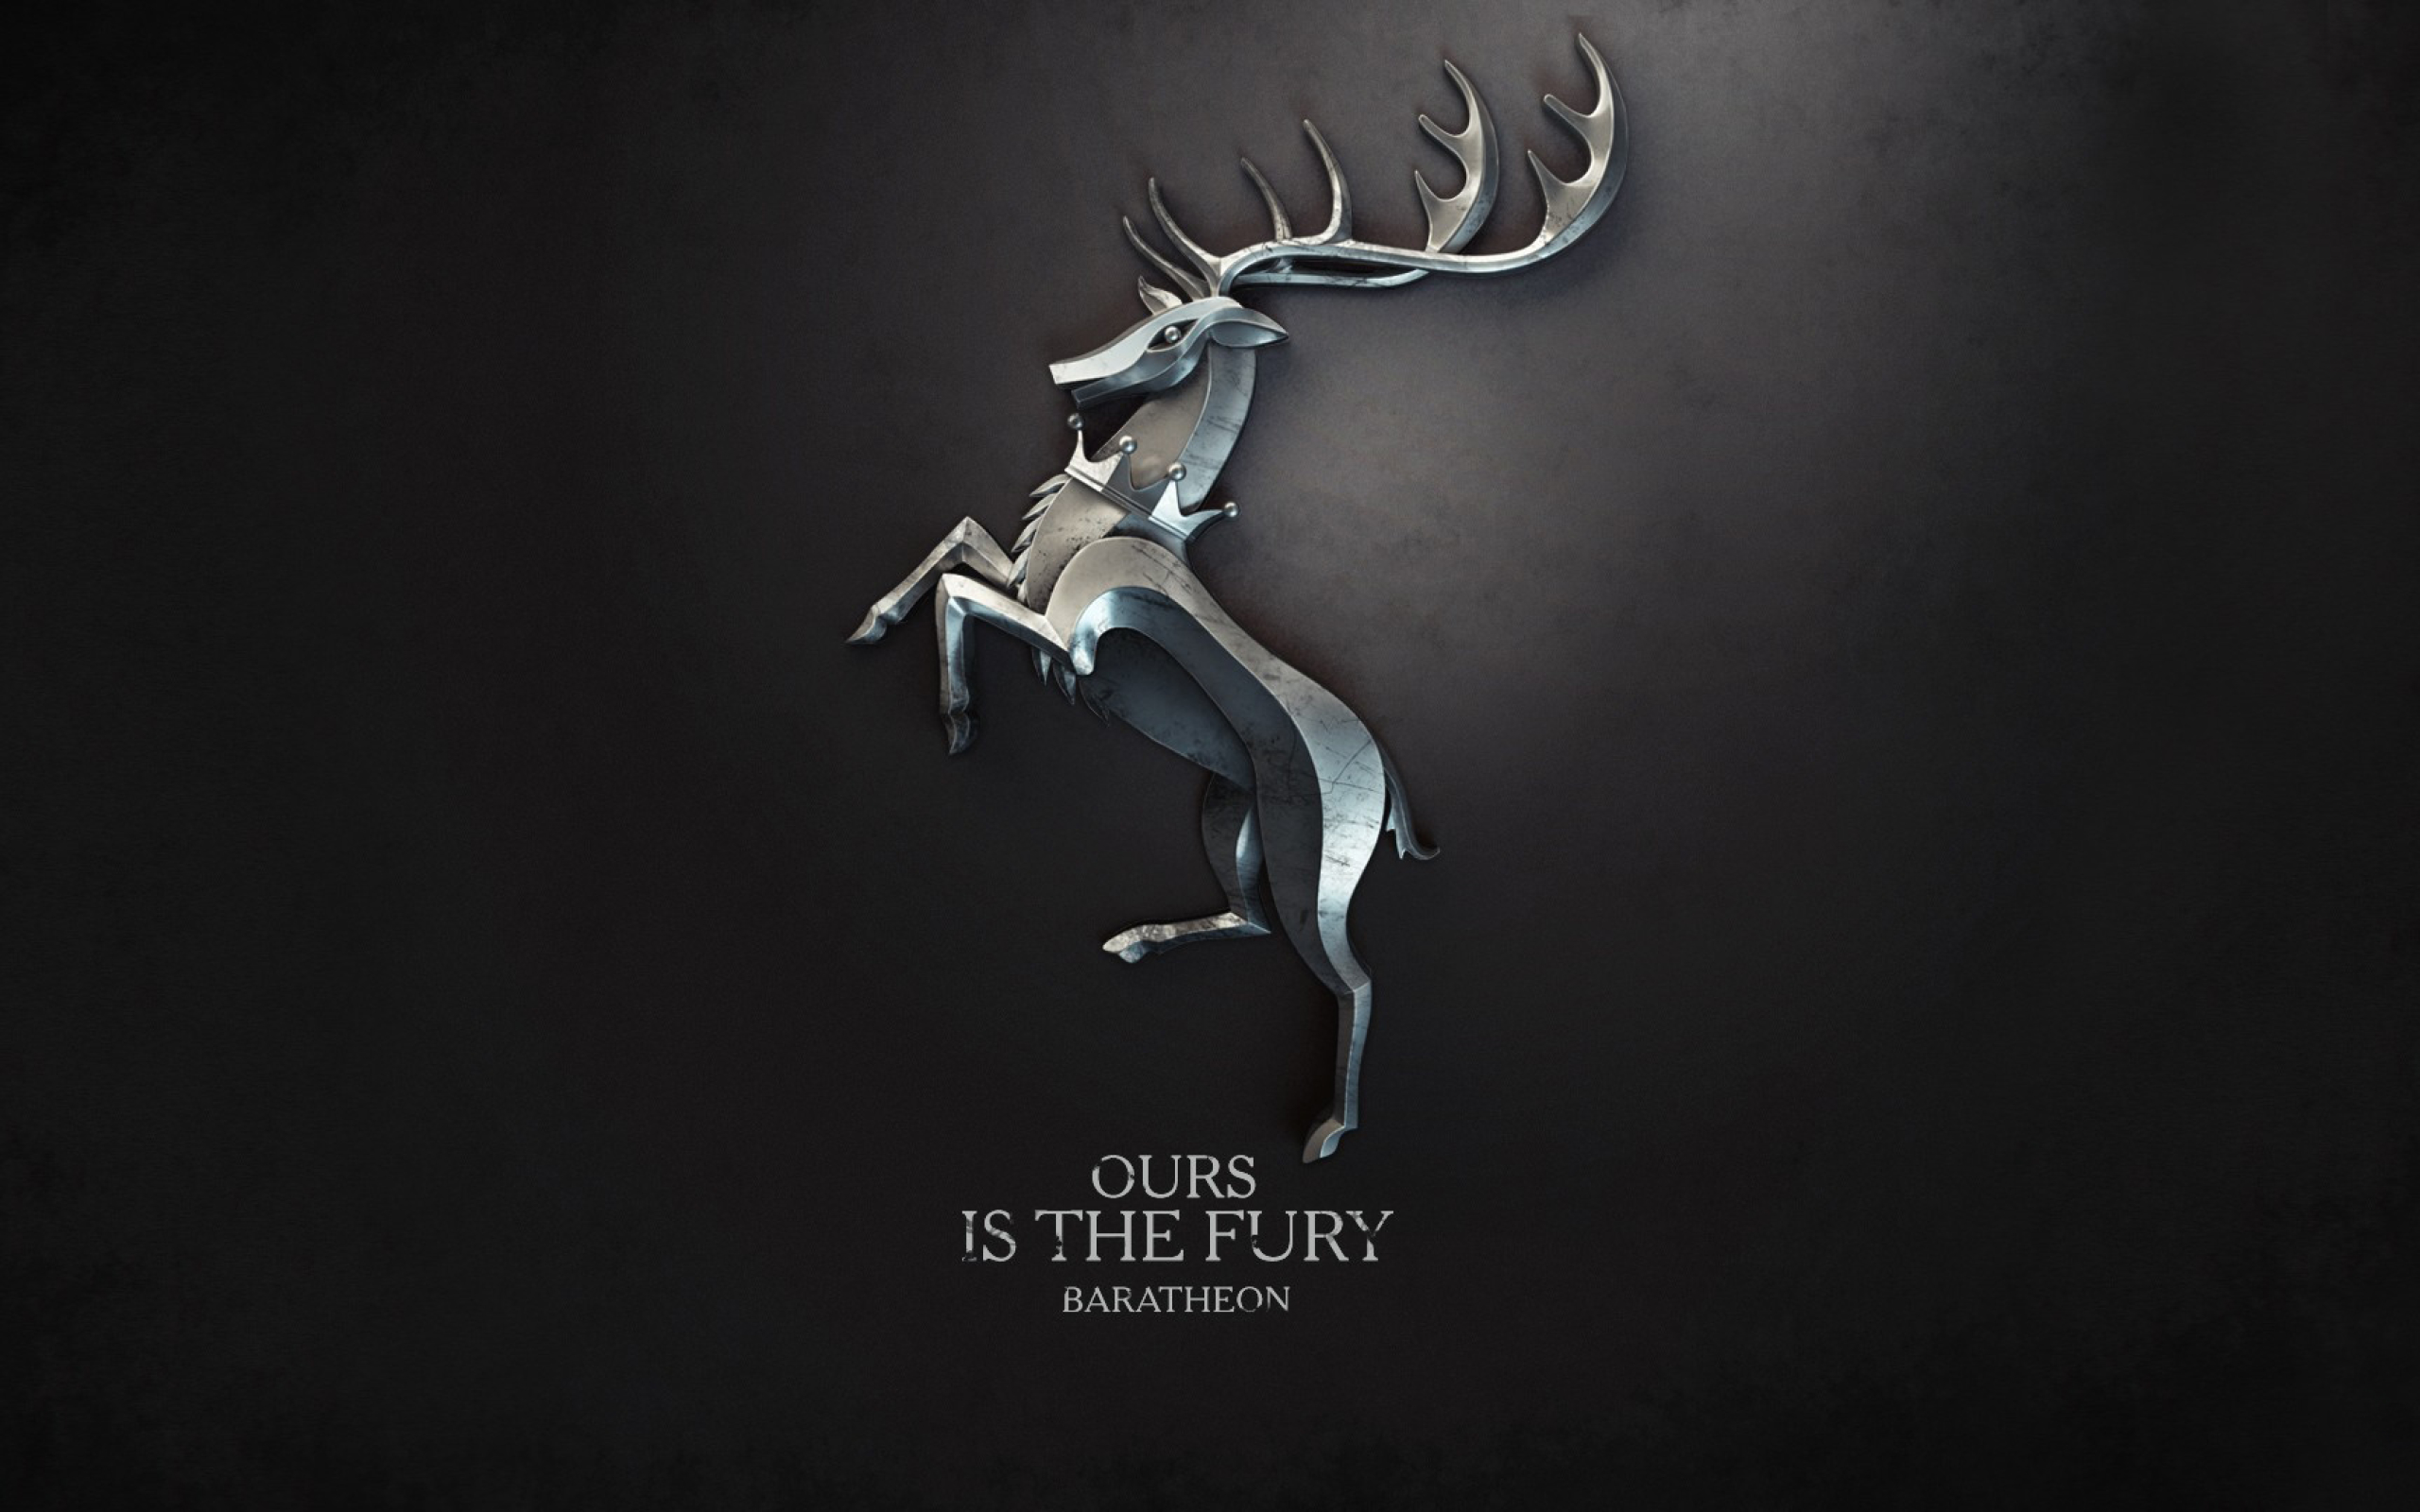 Ours Is The Fury Baratheon Game Of Thrones 01 Photoshoot